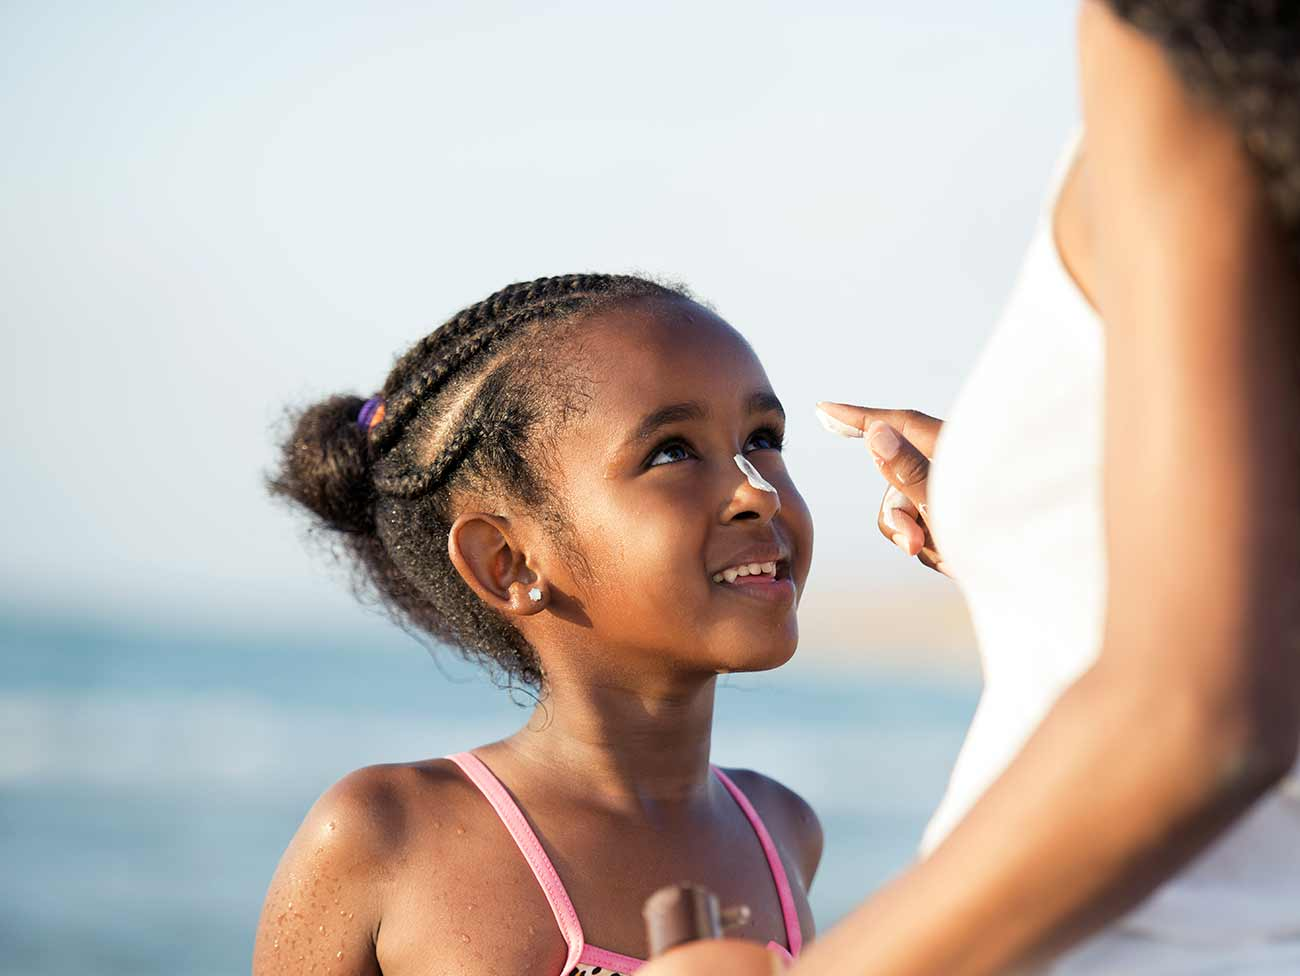 Mother applying sun protection cream to her young daughter on the beach.